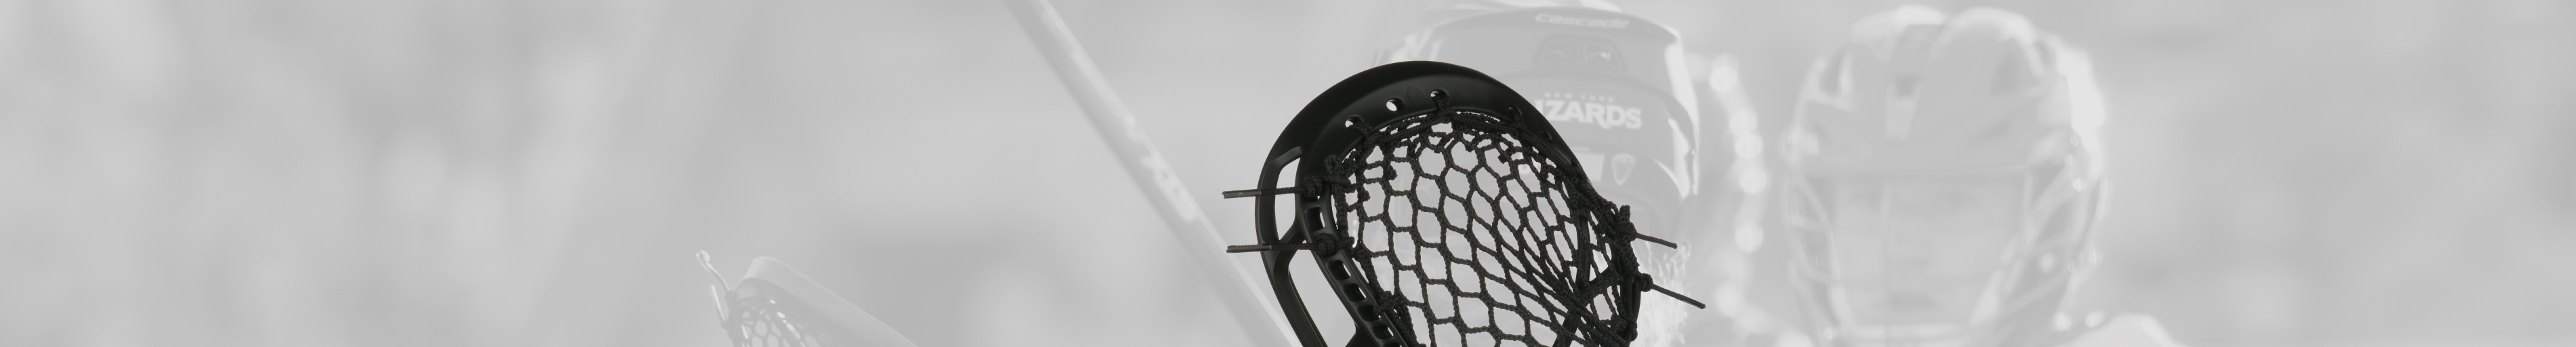 StringKing Matt Gibson Pro Series Lacrosse Stick Scoop